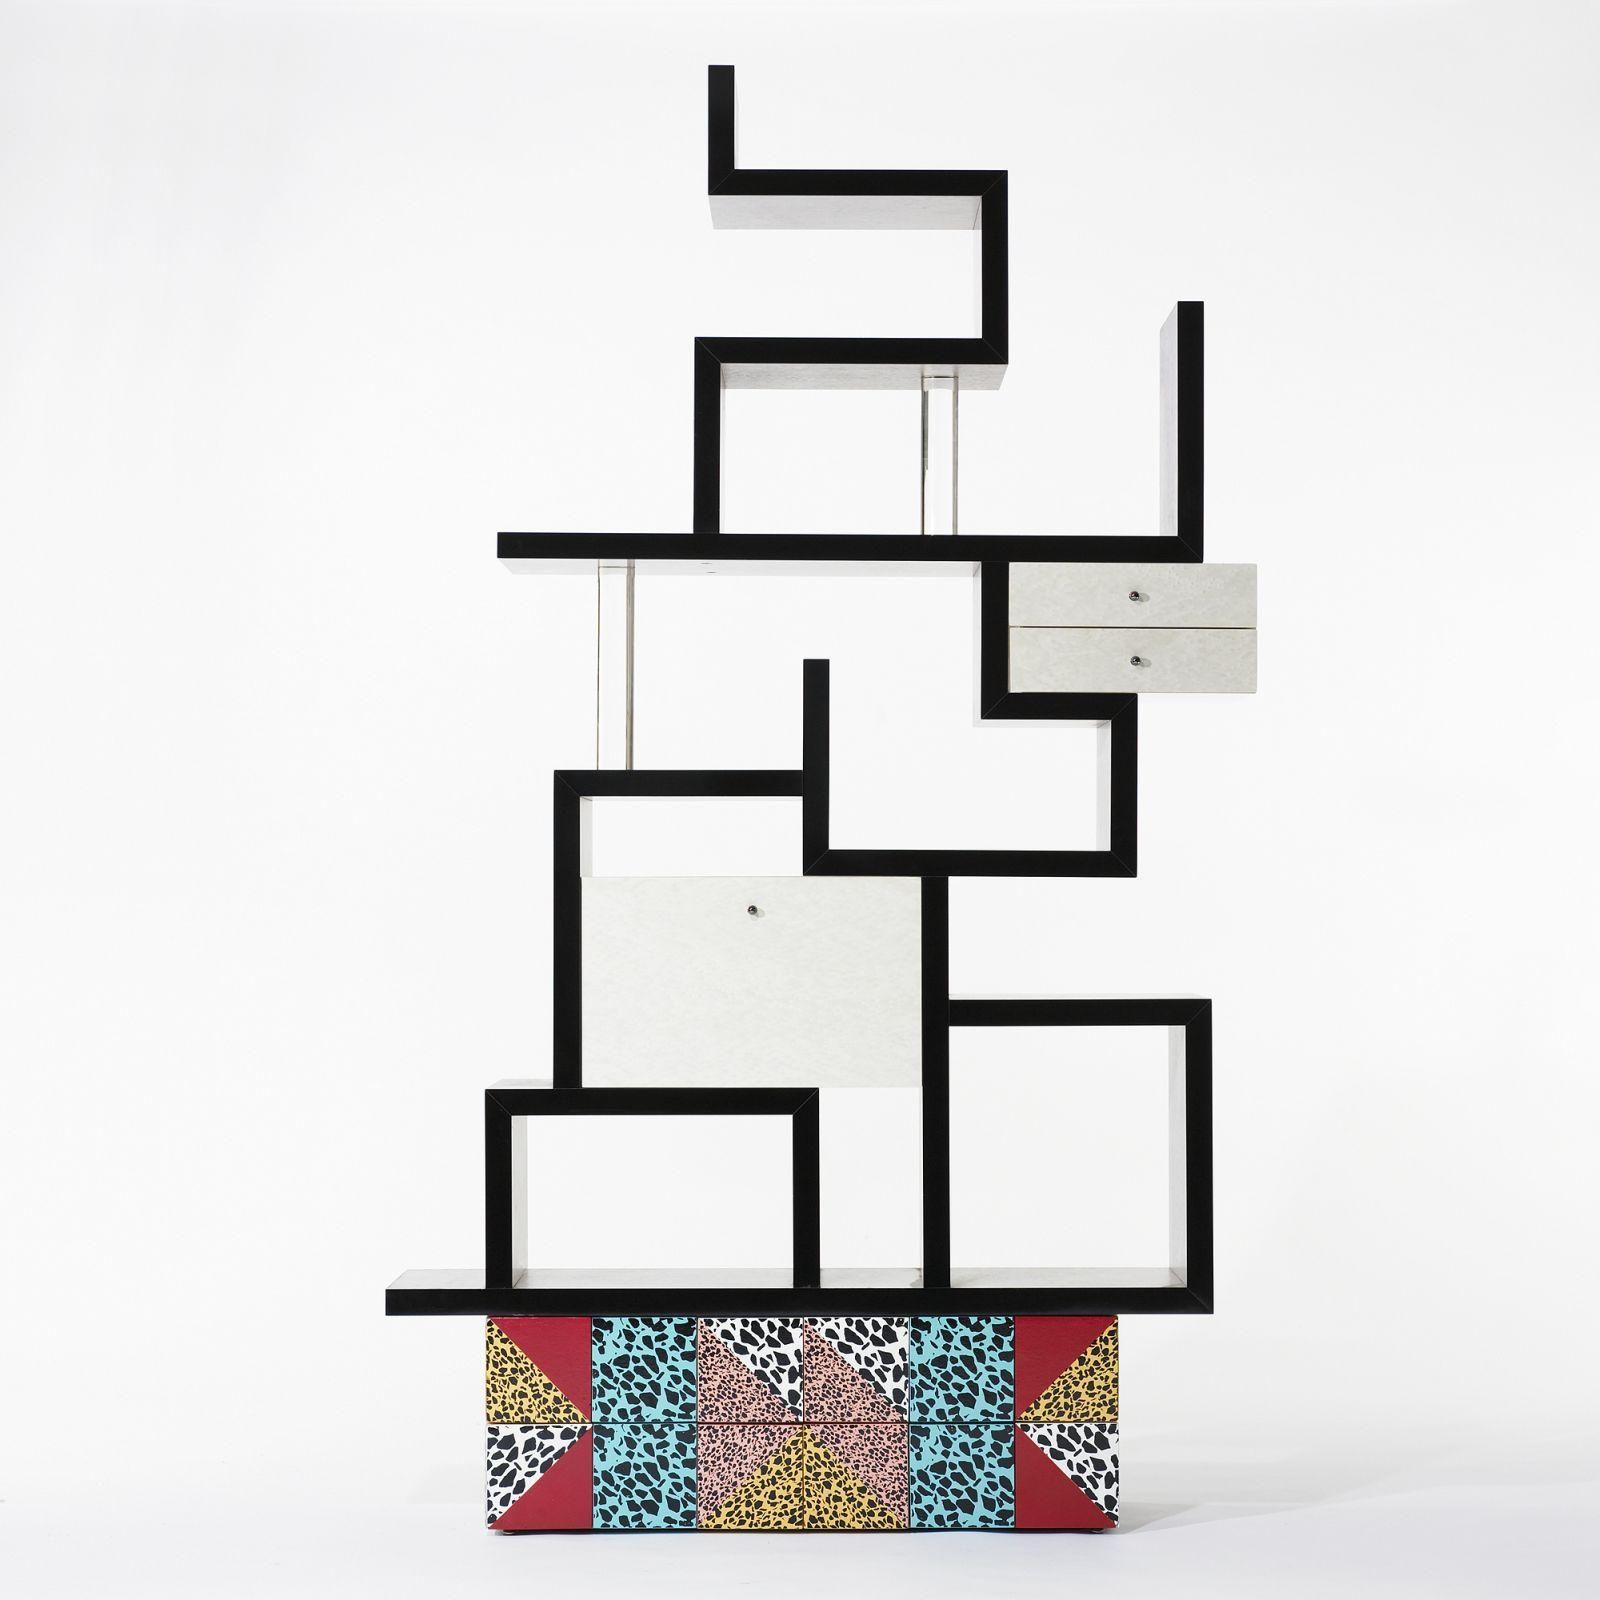 ettore sottsass max shelf memphis group pinterest